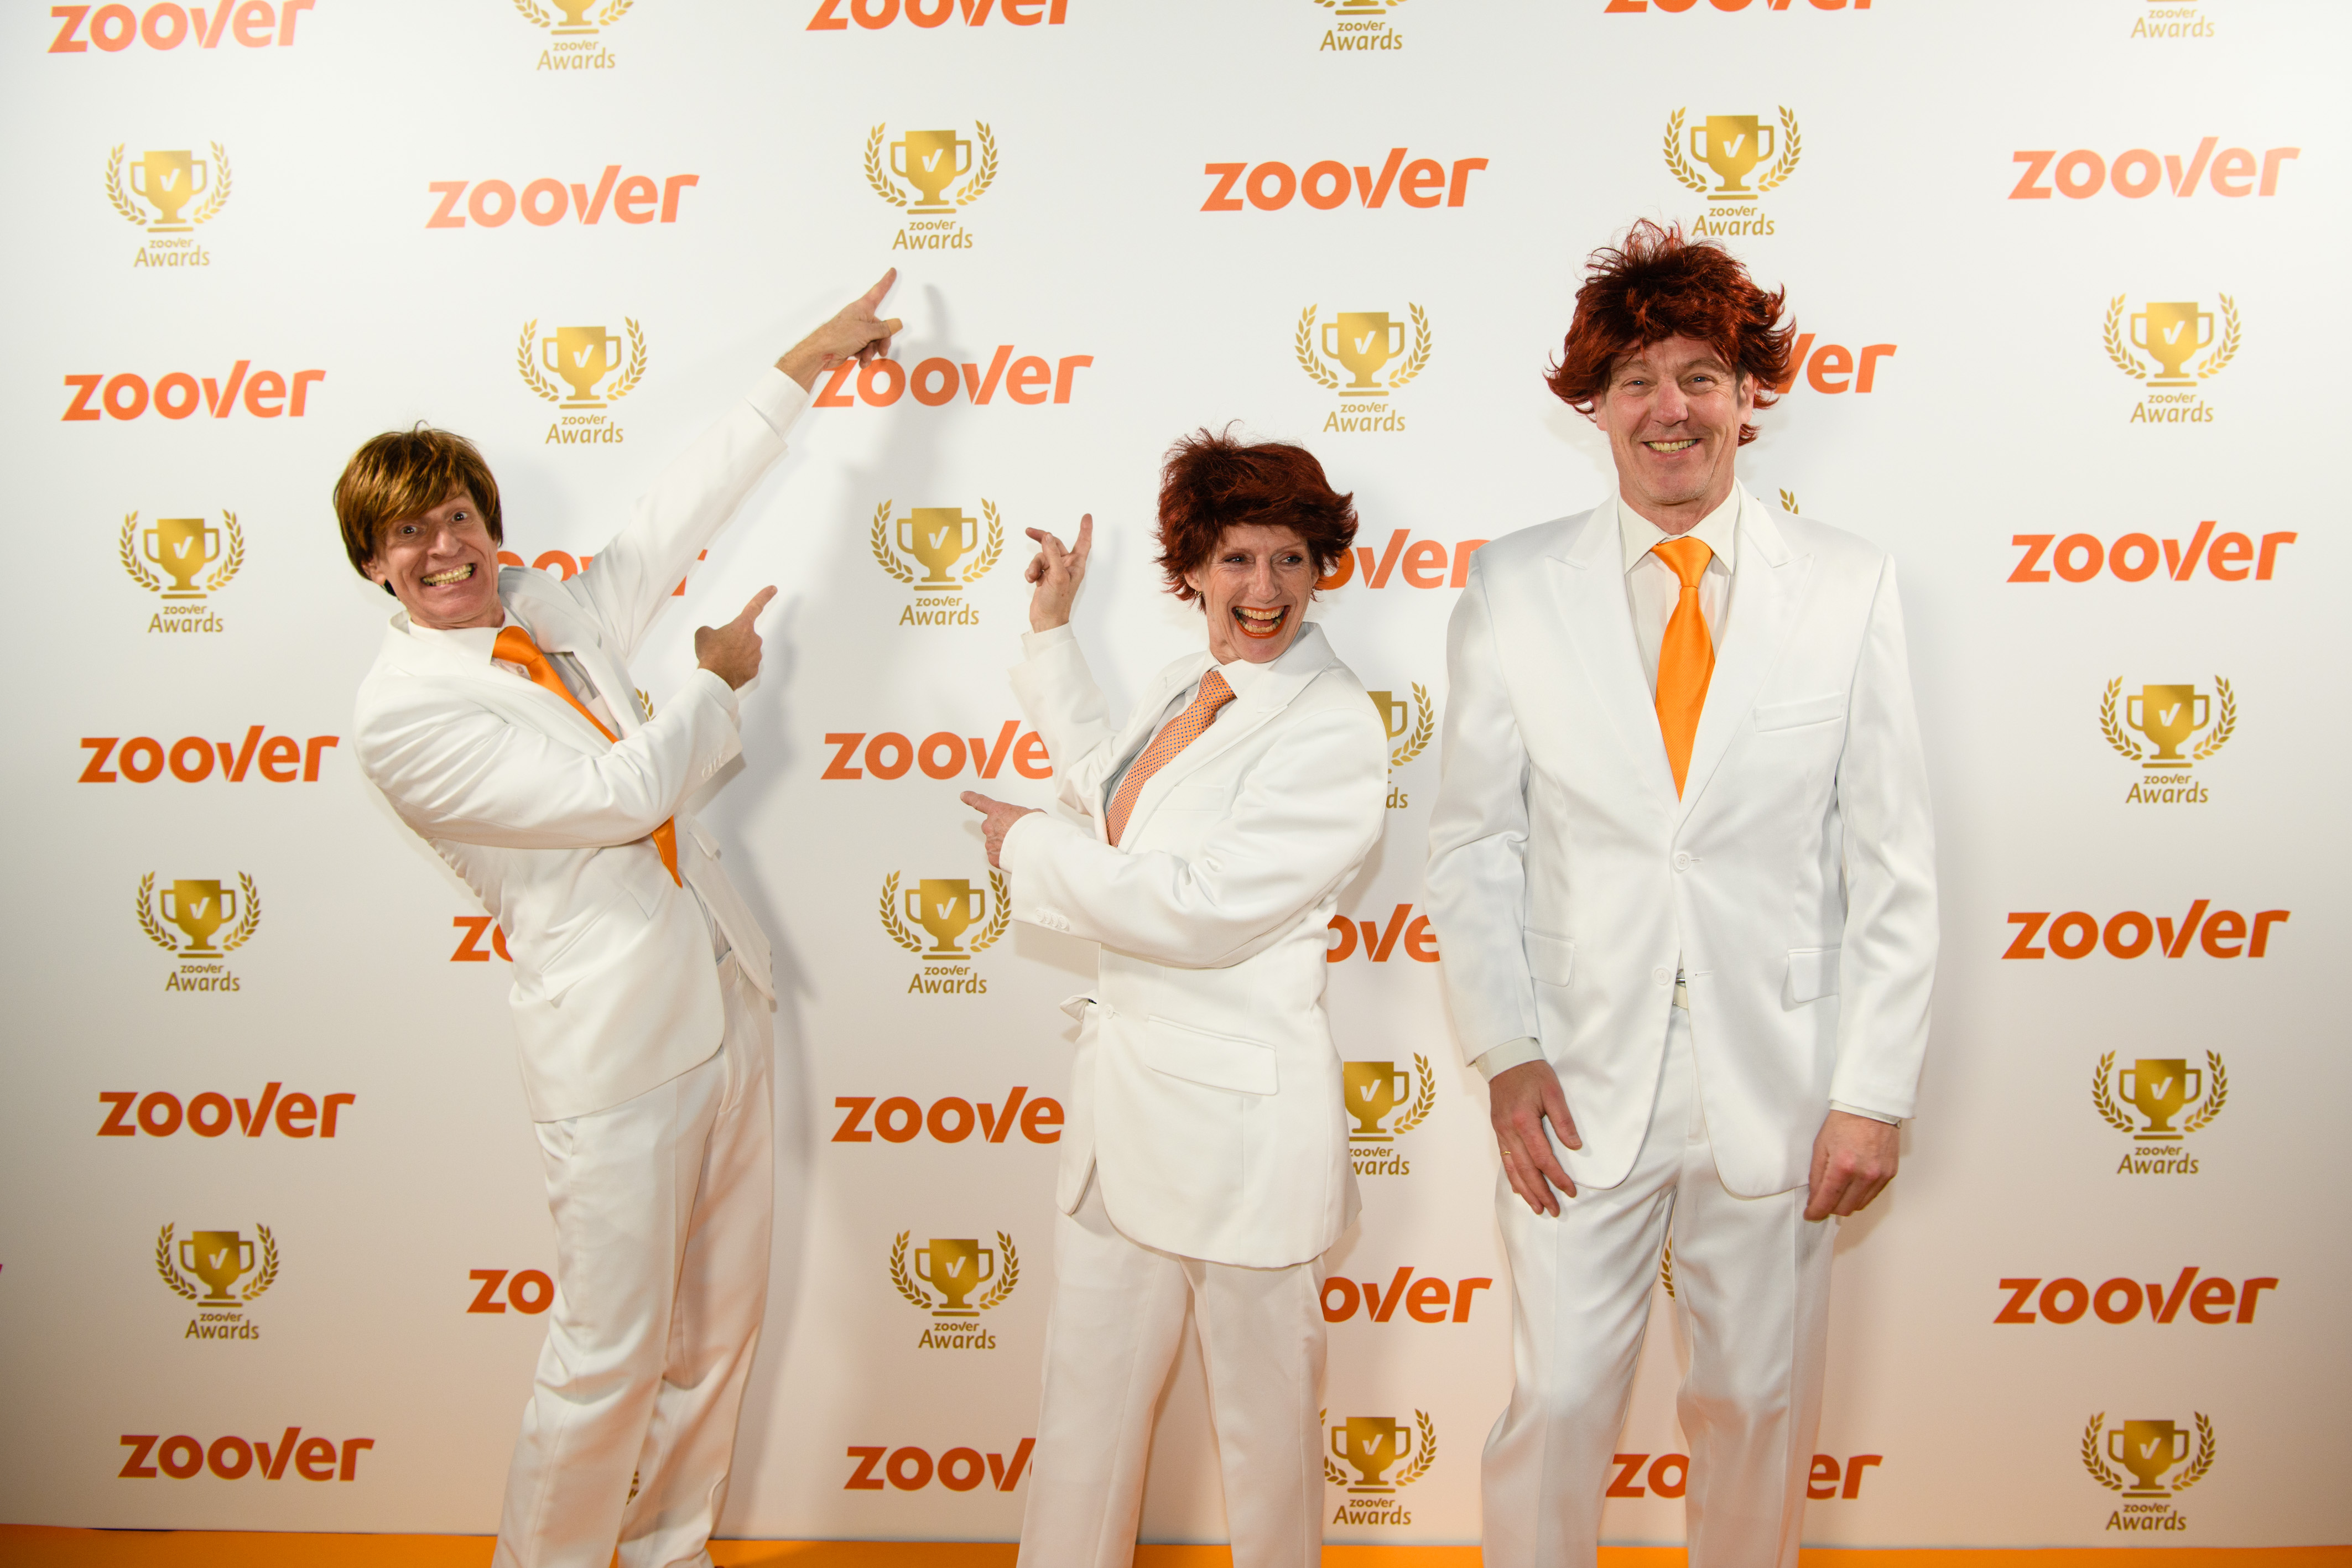 zoover_awards_100118-004p